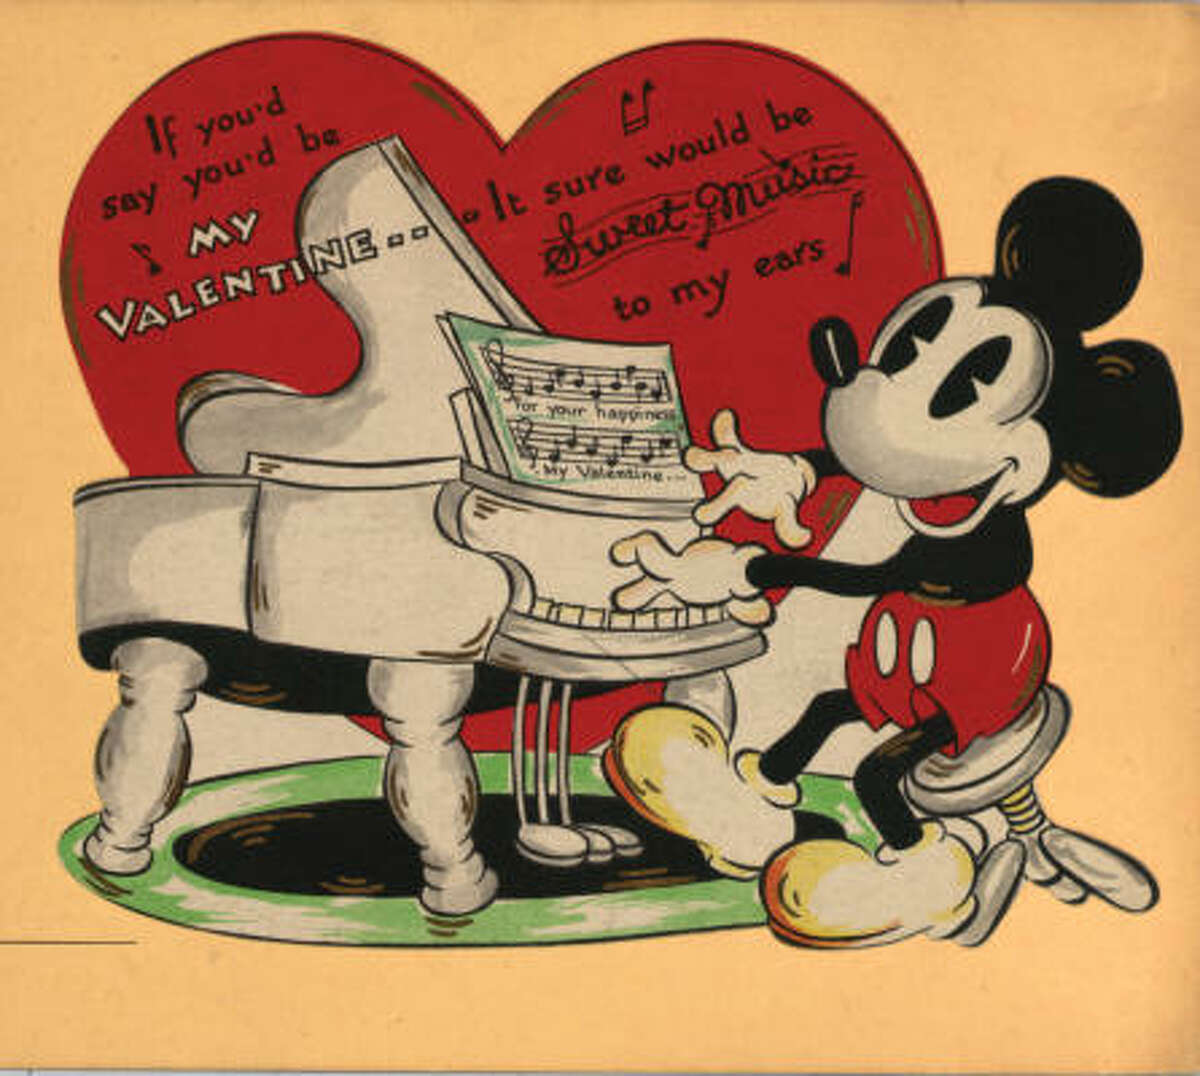 Kansas City-based Hallmark Cards signed its first licensing agreement with the Walt Disney Company in 1932. This is one of the first cards featuring Mickey Mouse.